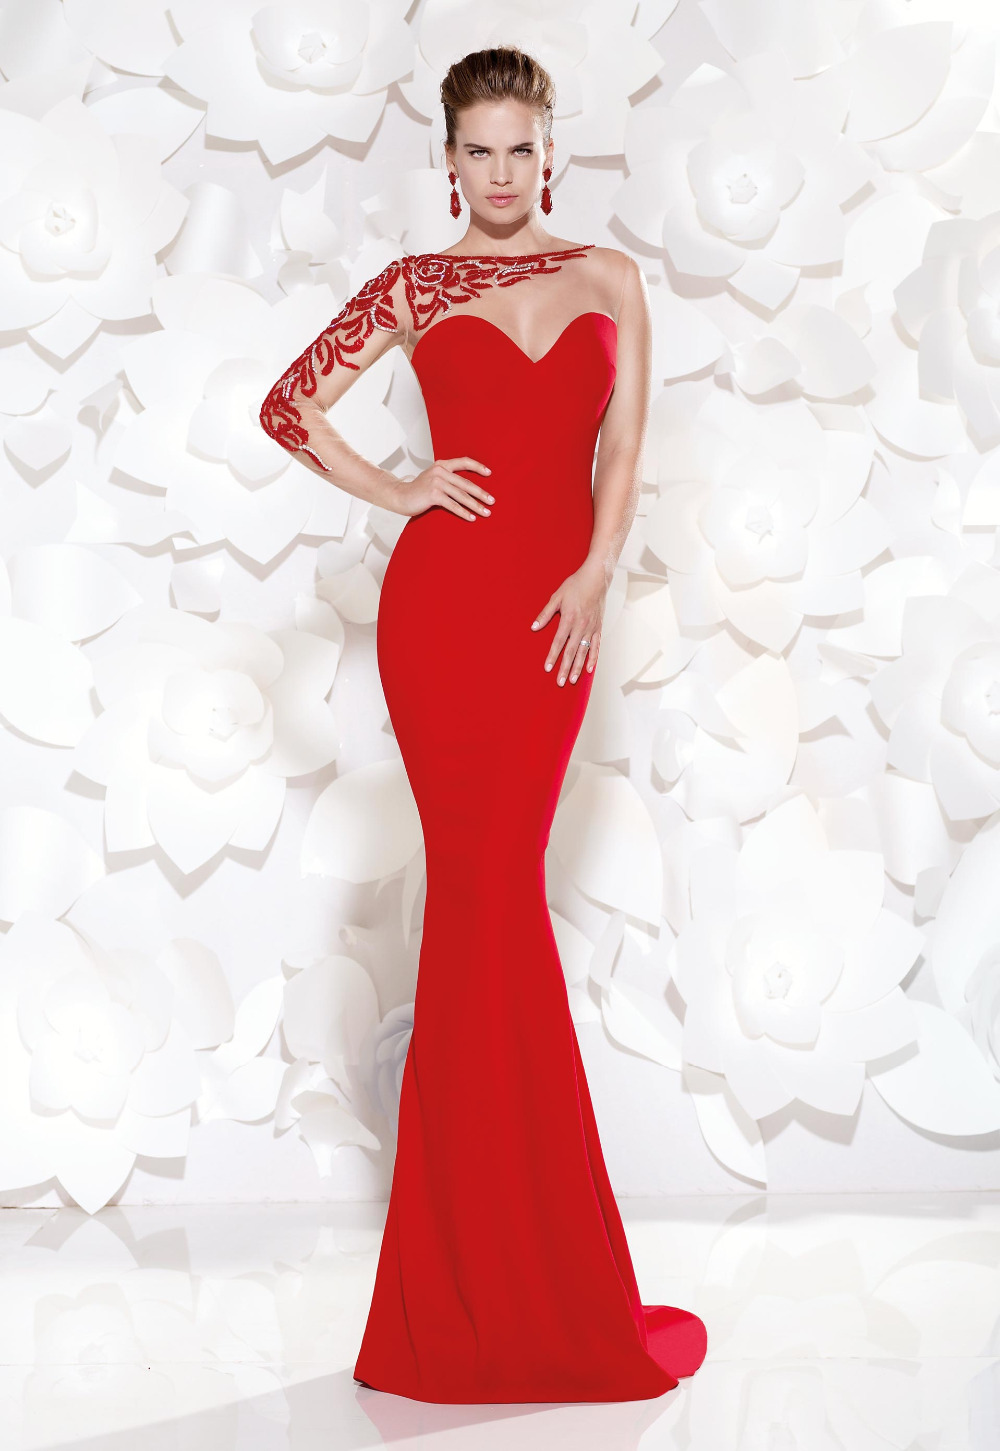 Elegant Long Sleeve Evening Dress Plus Size Formal Dresses For Special  Occasion Red Beading Prom Gowns Vestido De Festa Longo 802c5bbbf37f